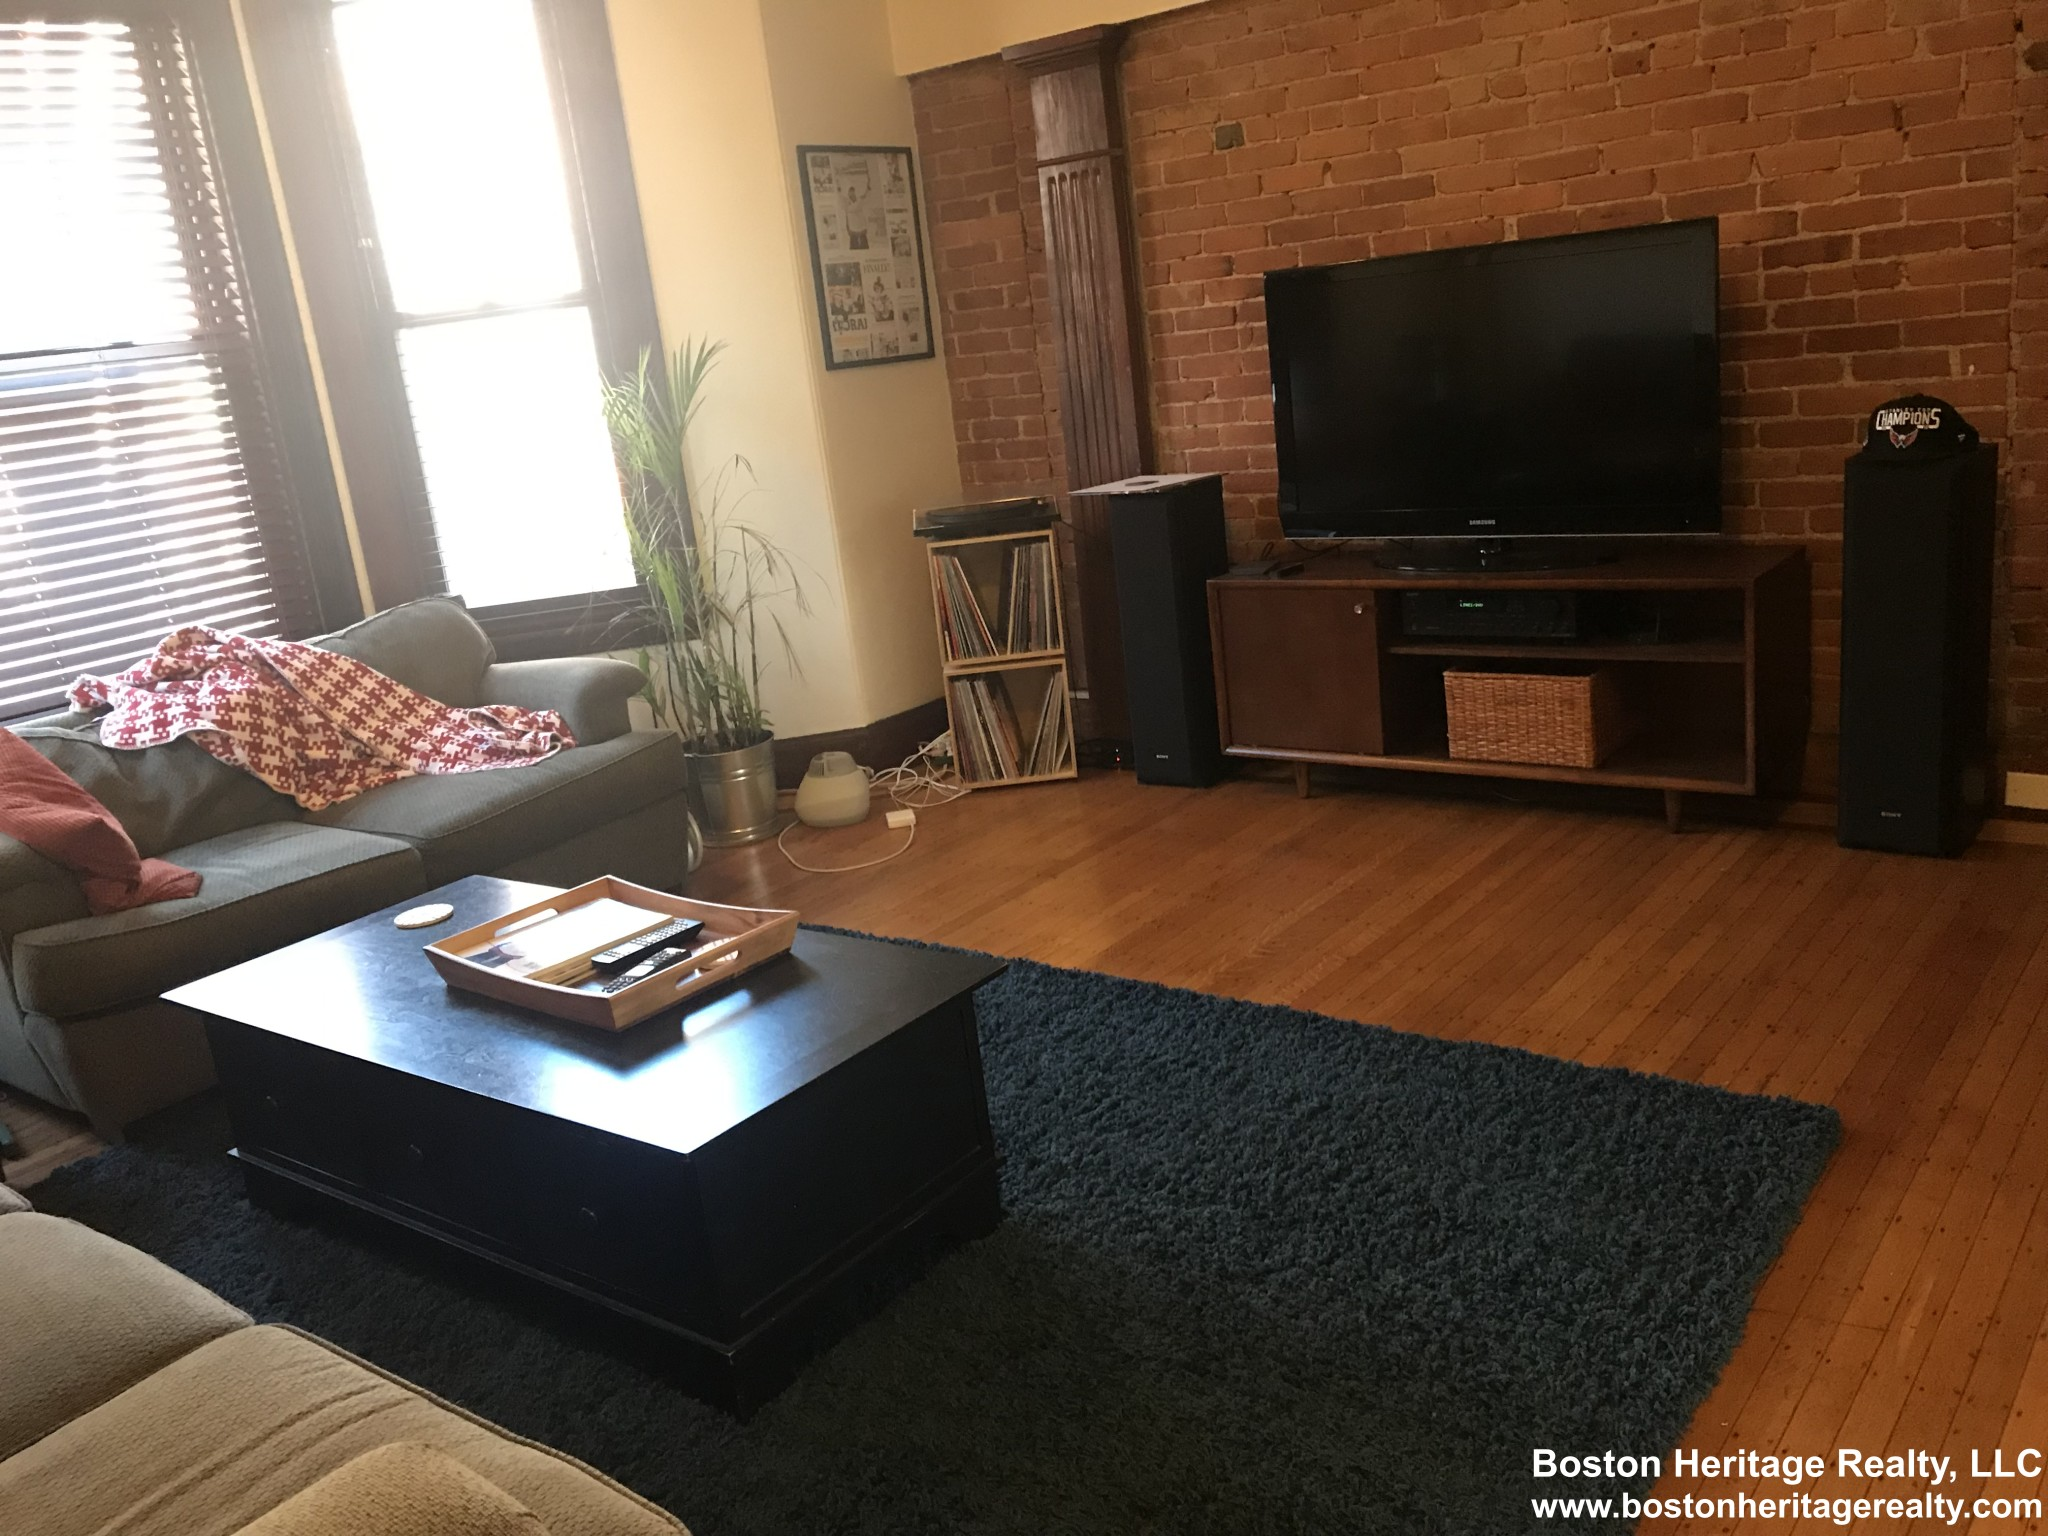 1 Bed, 1 Bath apartment in Boston, Fenway for $2,250